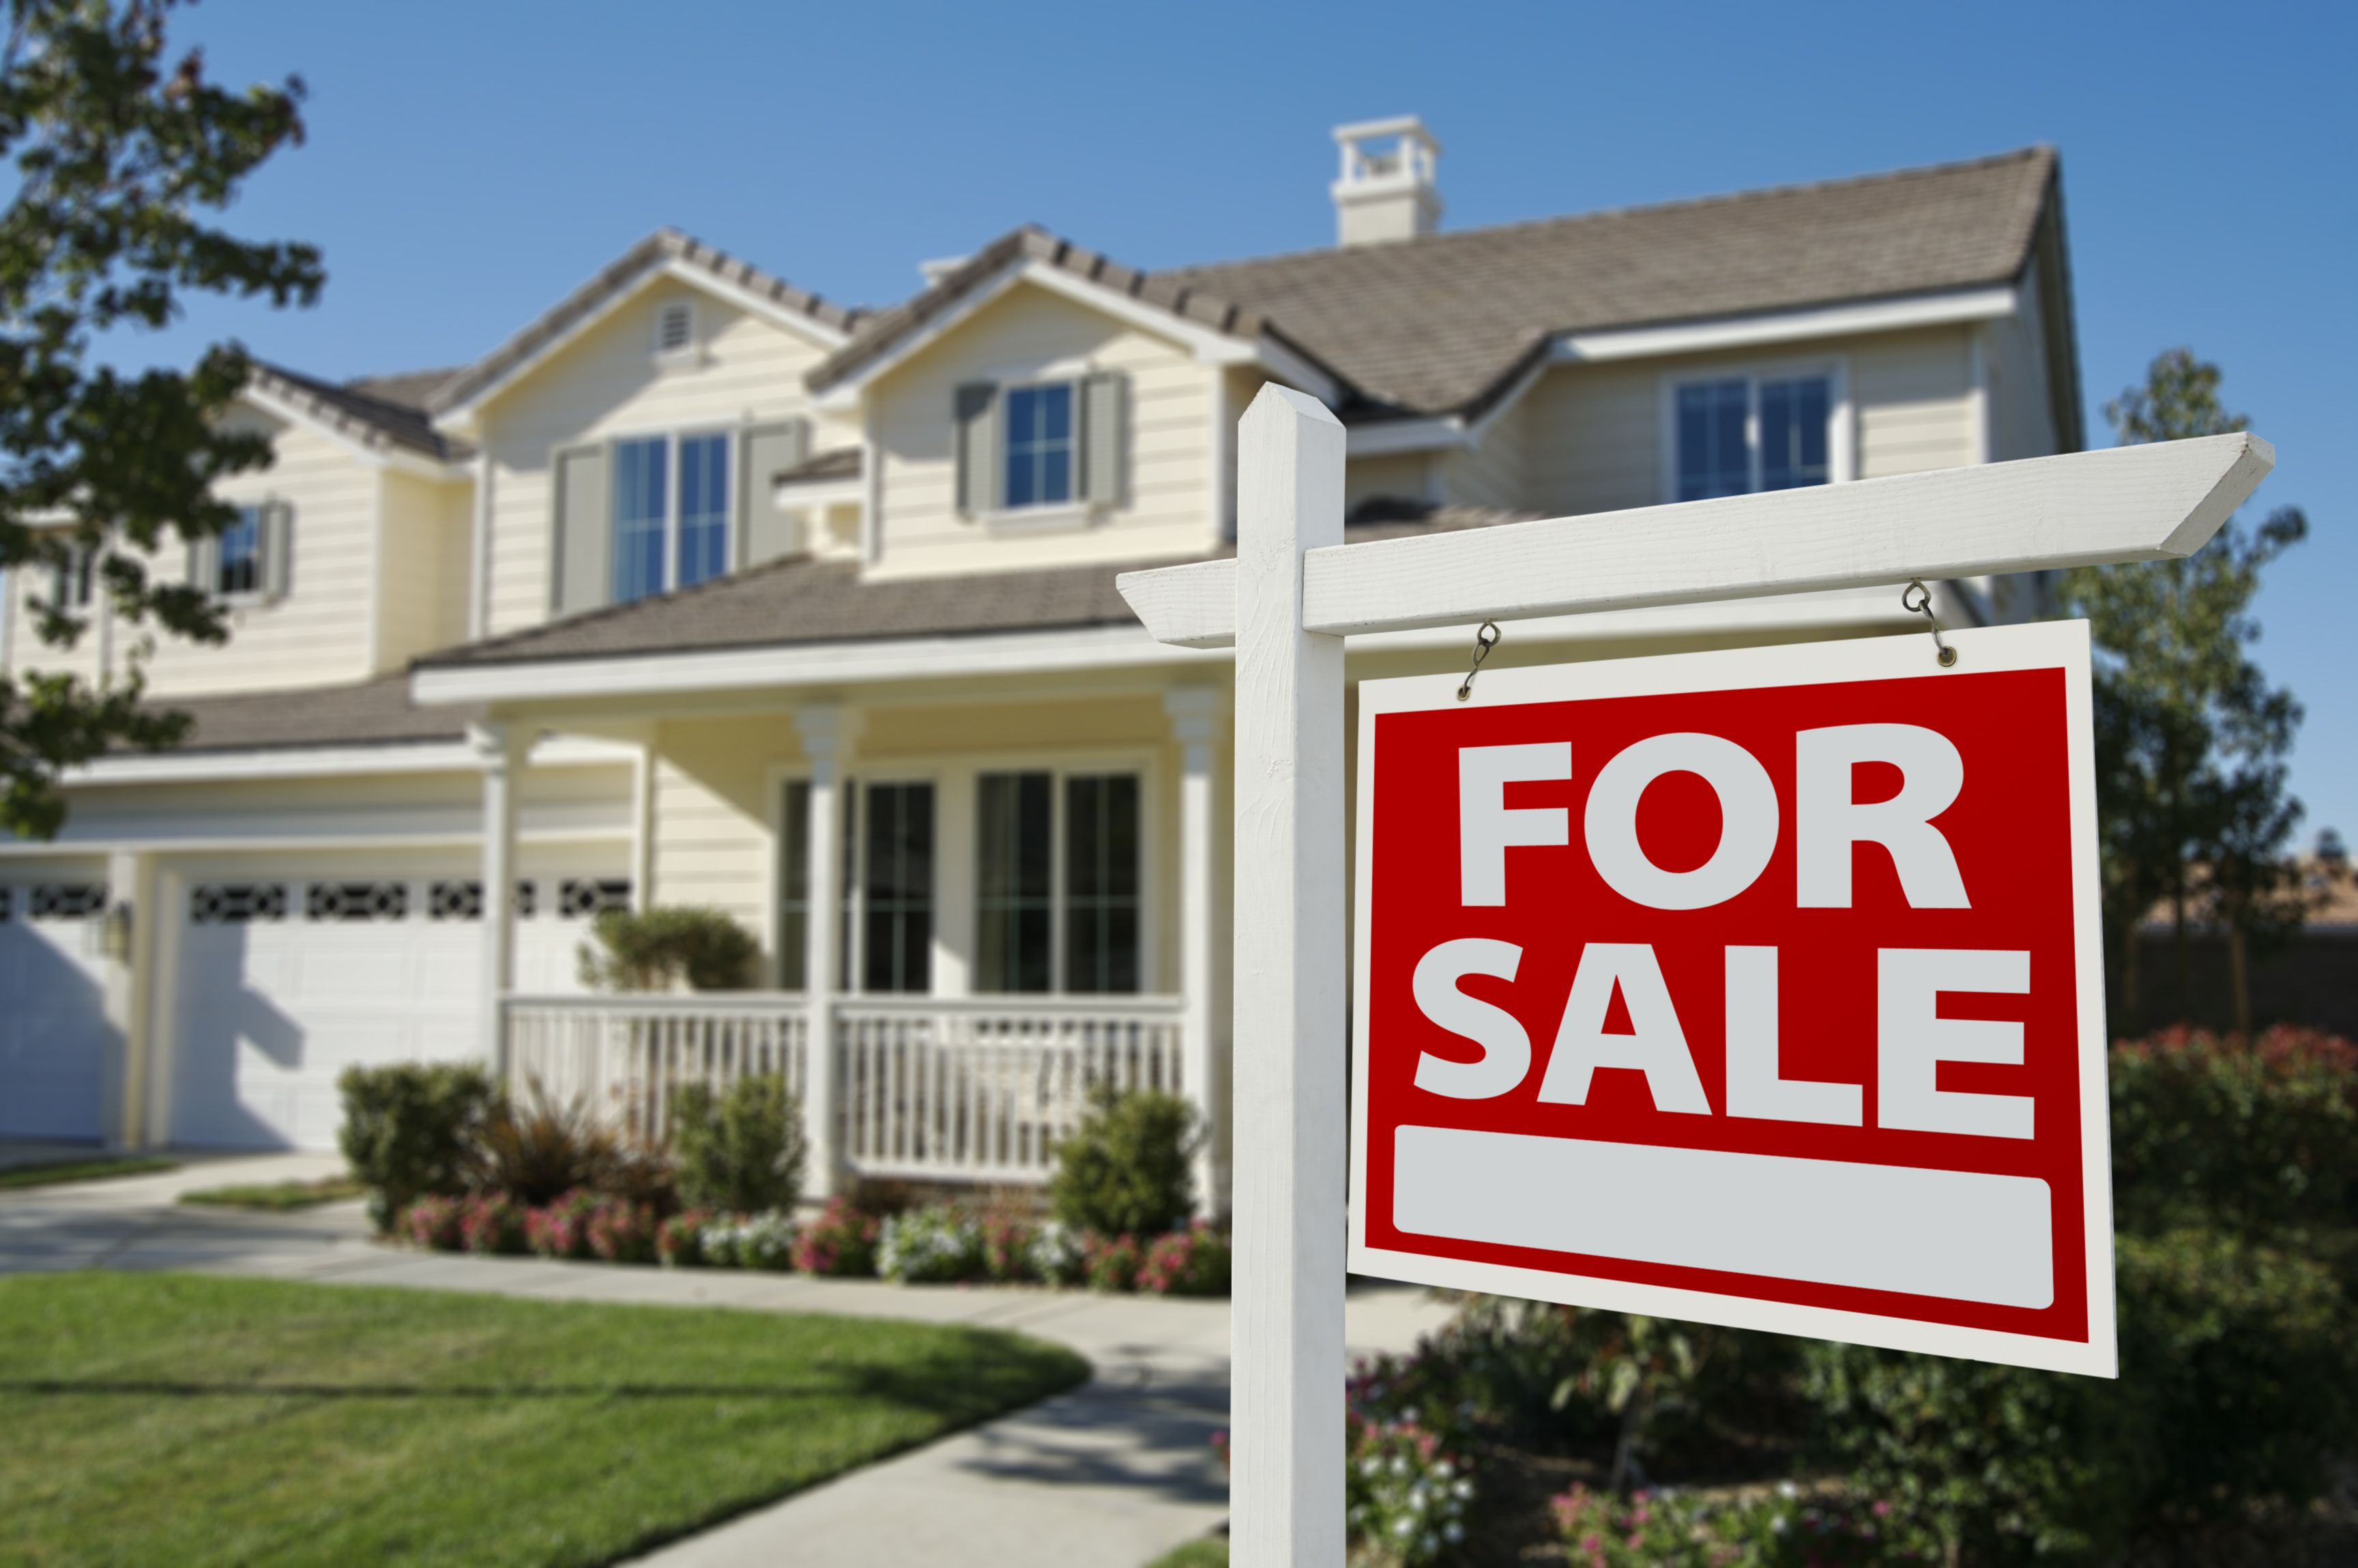 Top 5 Reasons To Buy Vs Rent Your Home Zillow We Buy Houses Sell My House Selling House